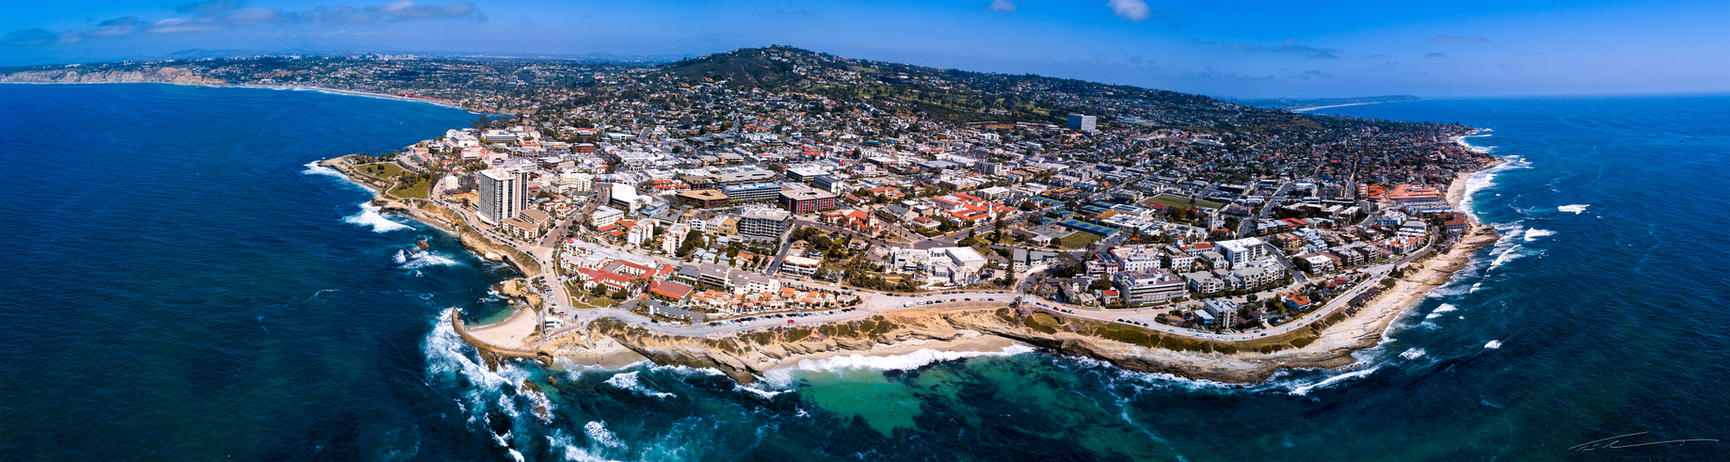 La Jolla Cove, San Diego, California USA - Drone by timothylgreen